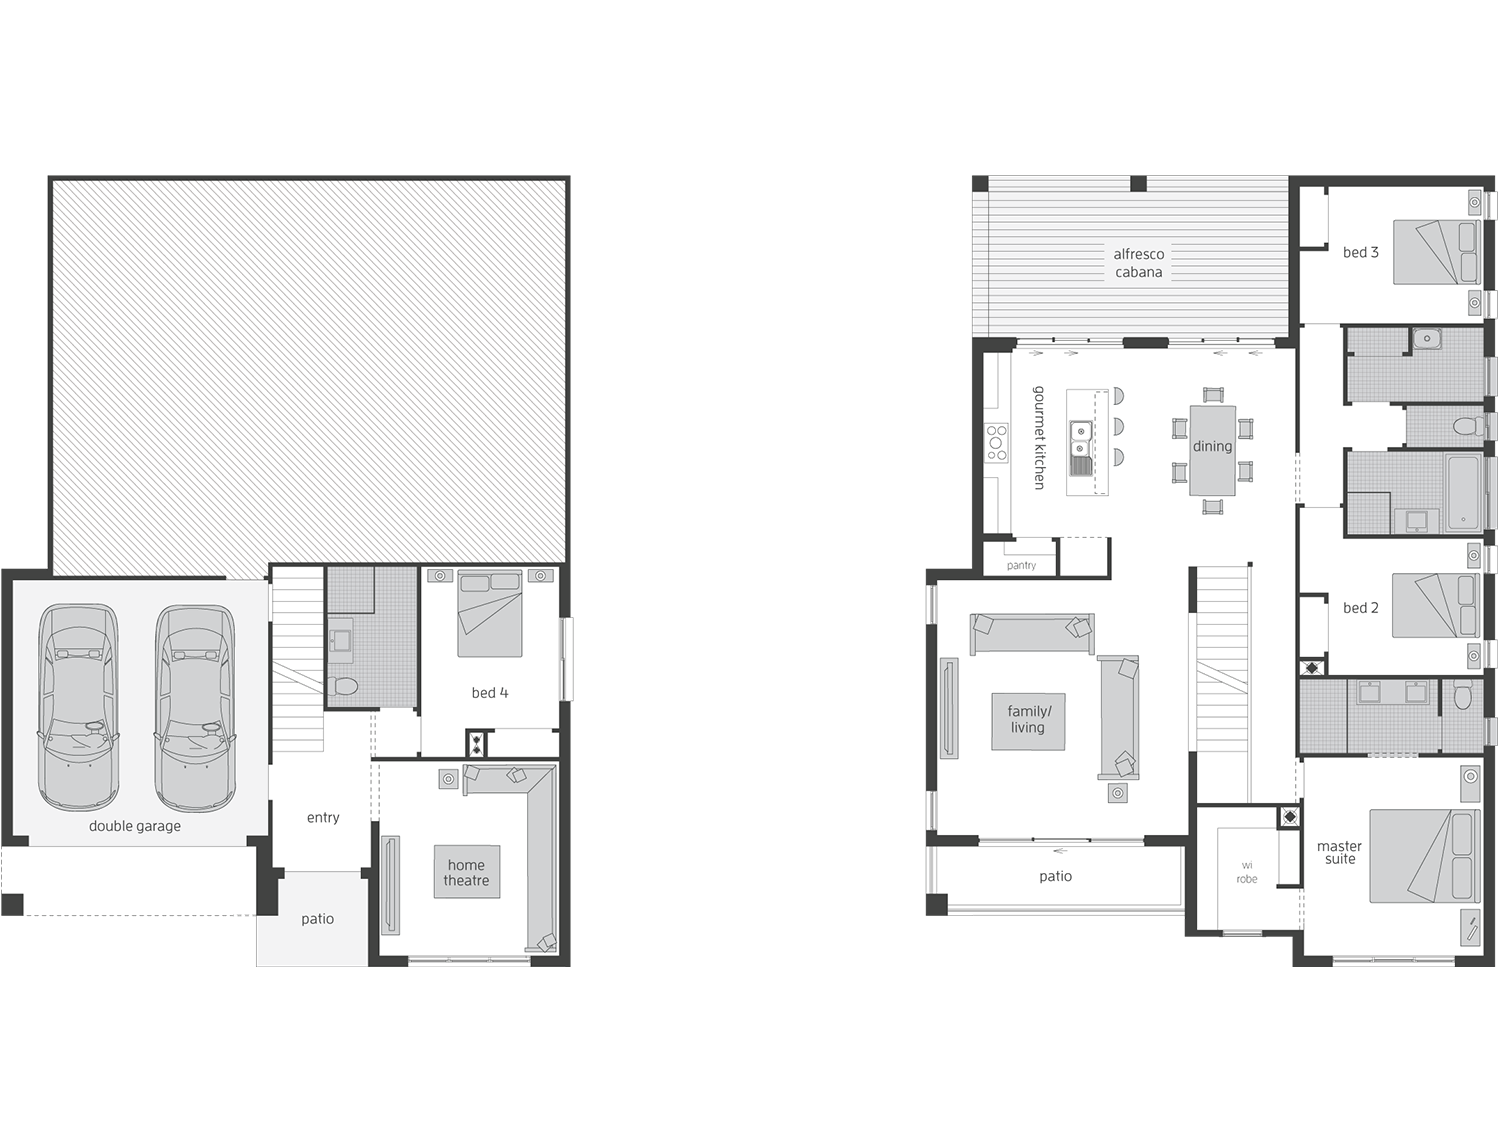 Floor Plan - Monterey - Sloping Block Homes - McDonald Jones